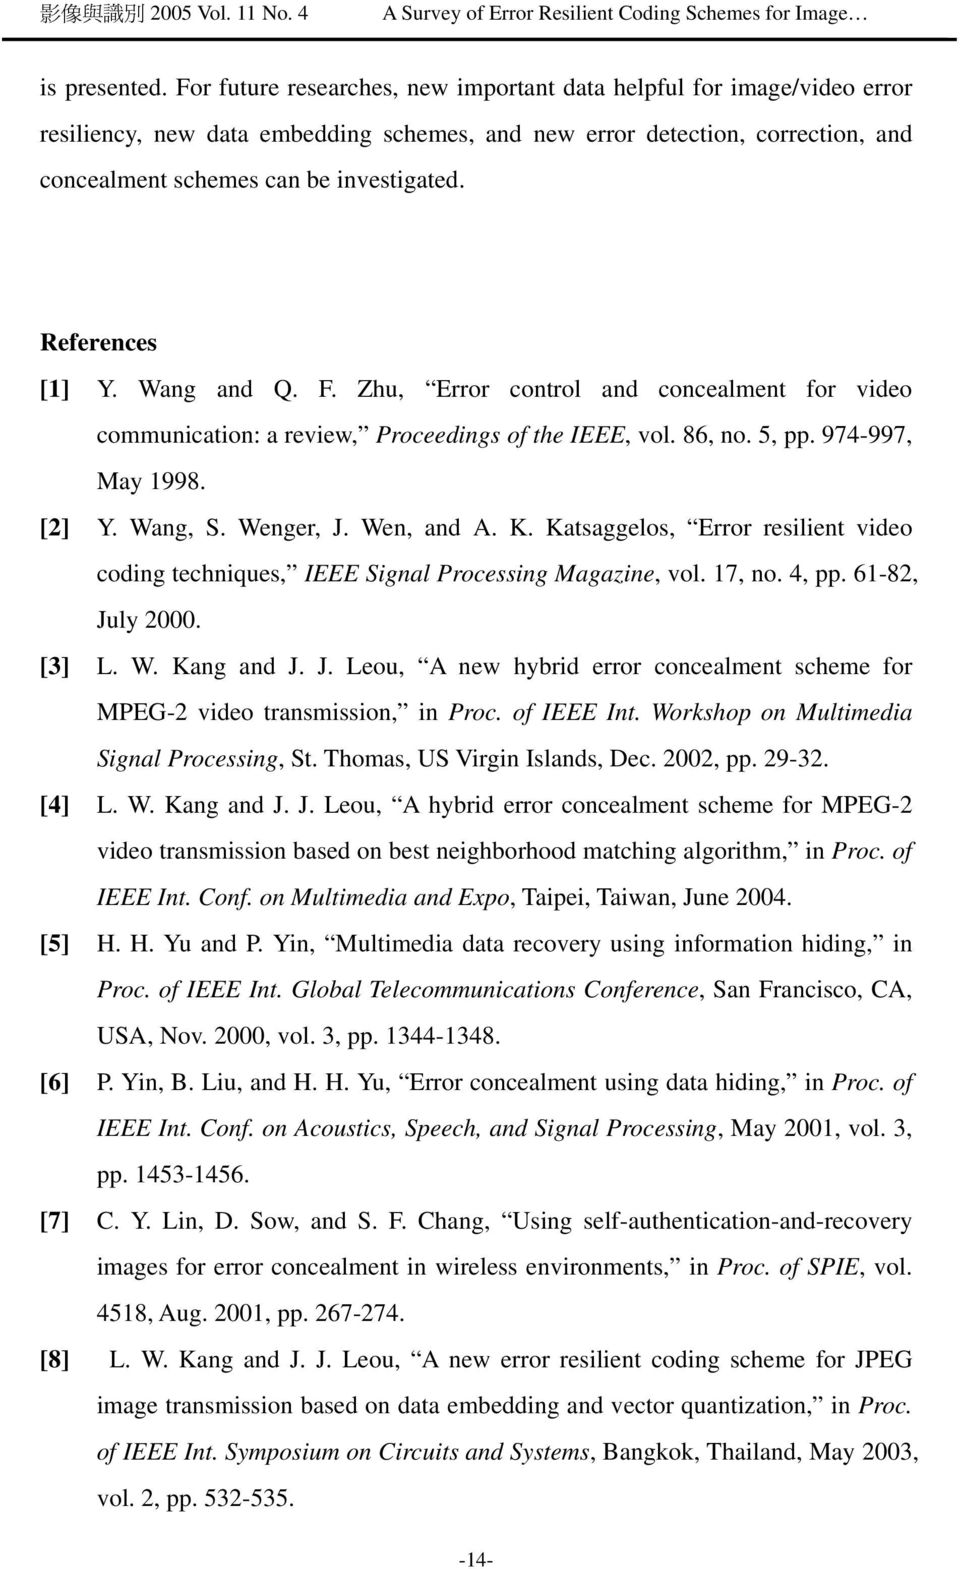 References [1] Y. Wang and Q. F. Zhu, Error control and concealment for video communication: a review, Proceedings of the IEEE, vol. 86, no. 5, pp. 974-997, May 1998. [2] Y. Wang, S. Wenger, J.